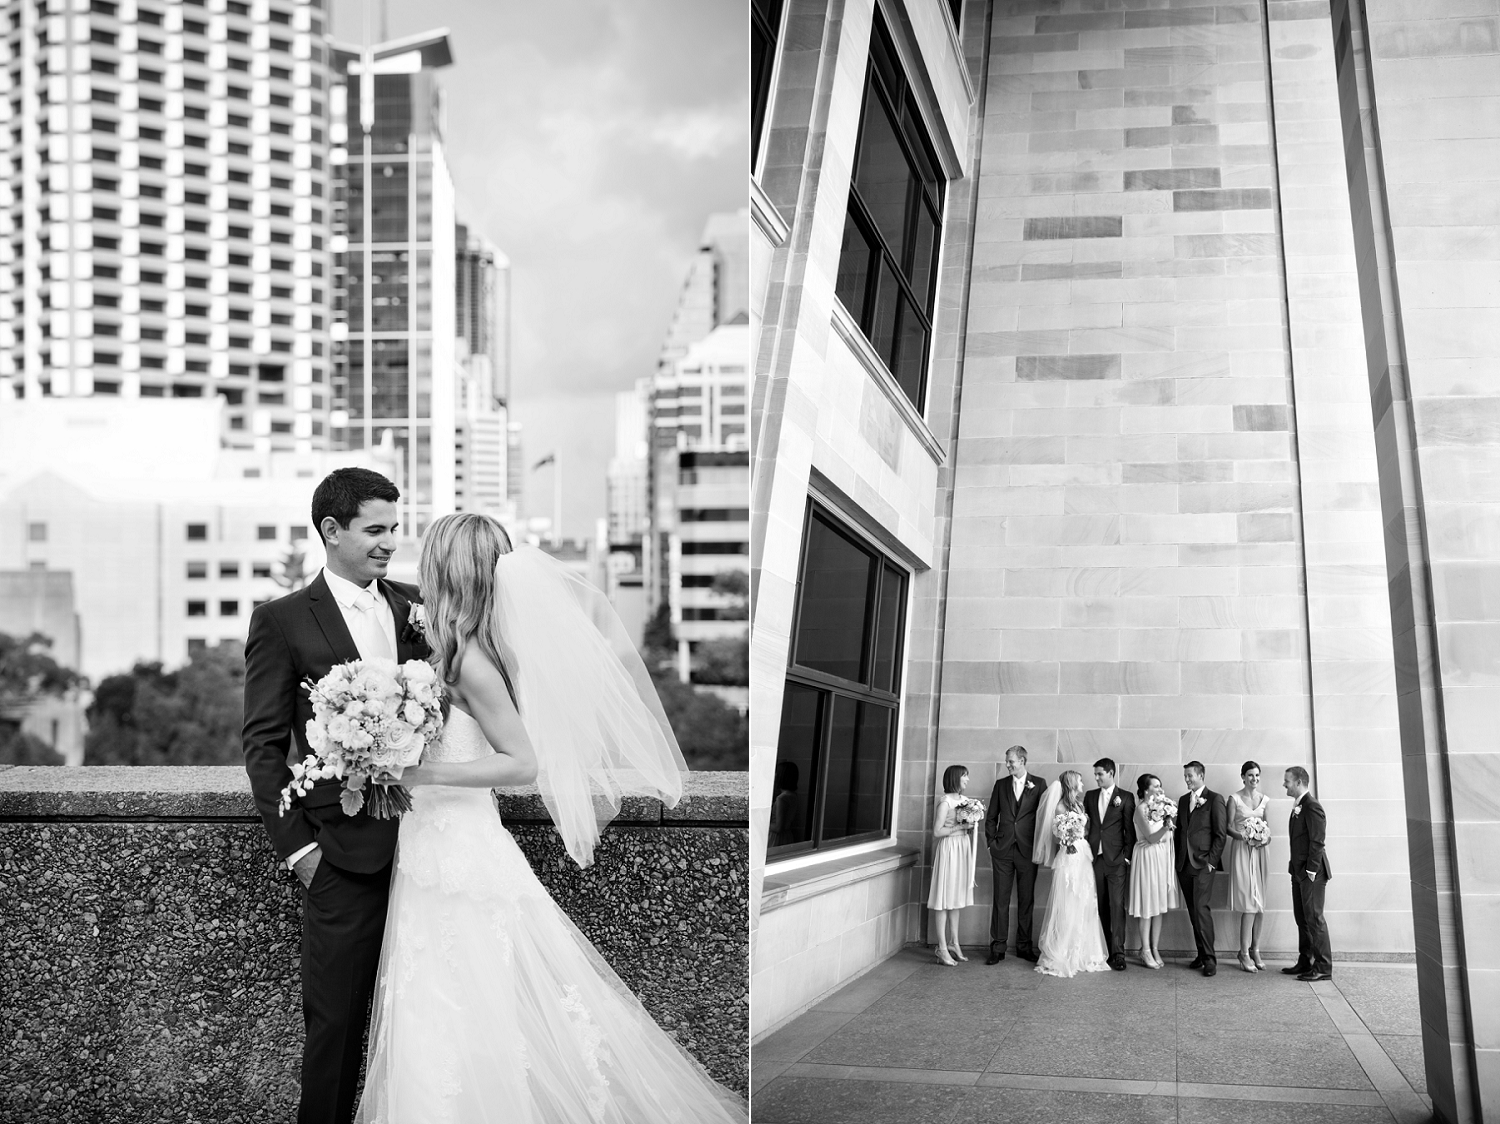 matilda bay wedding photographers perth 39.jpg